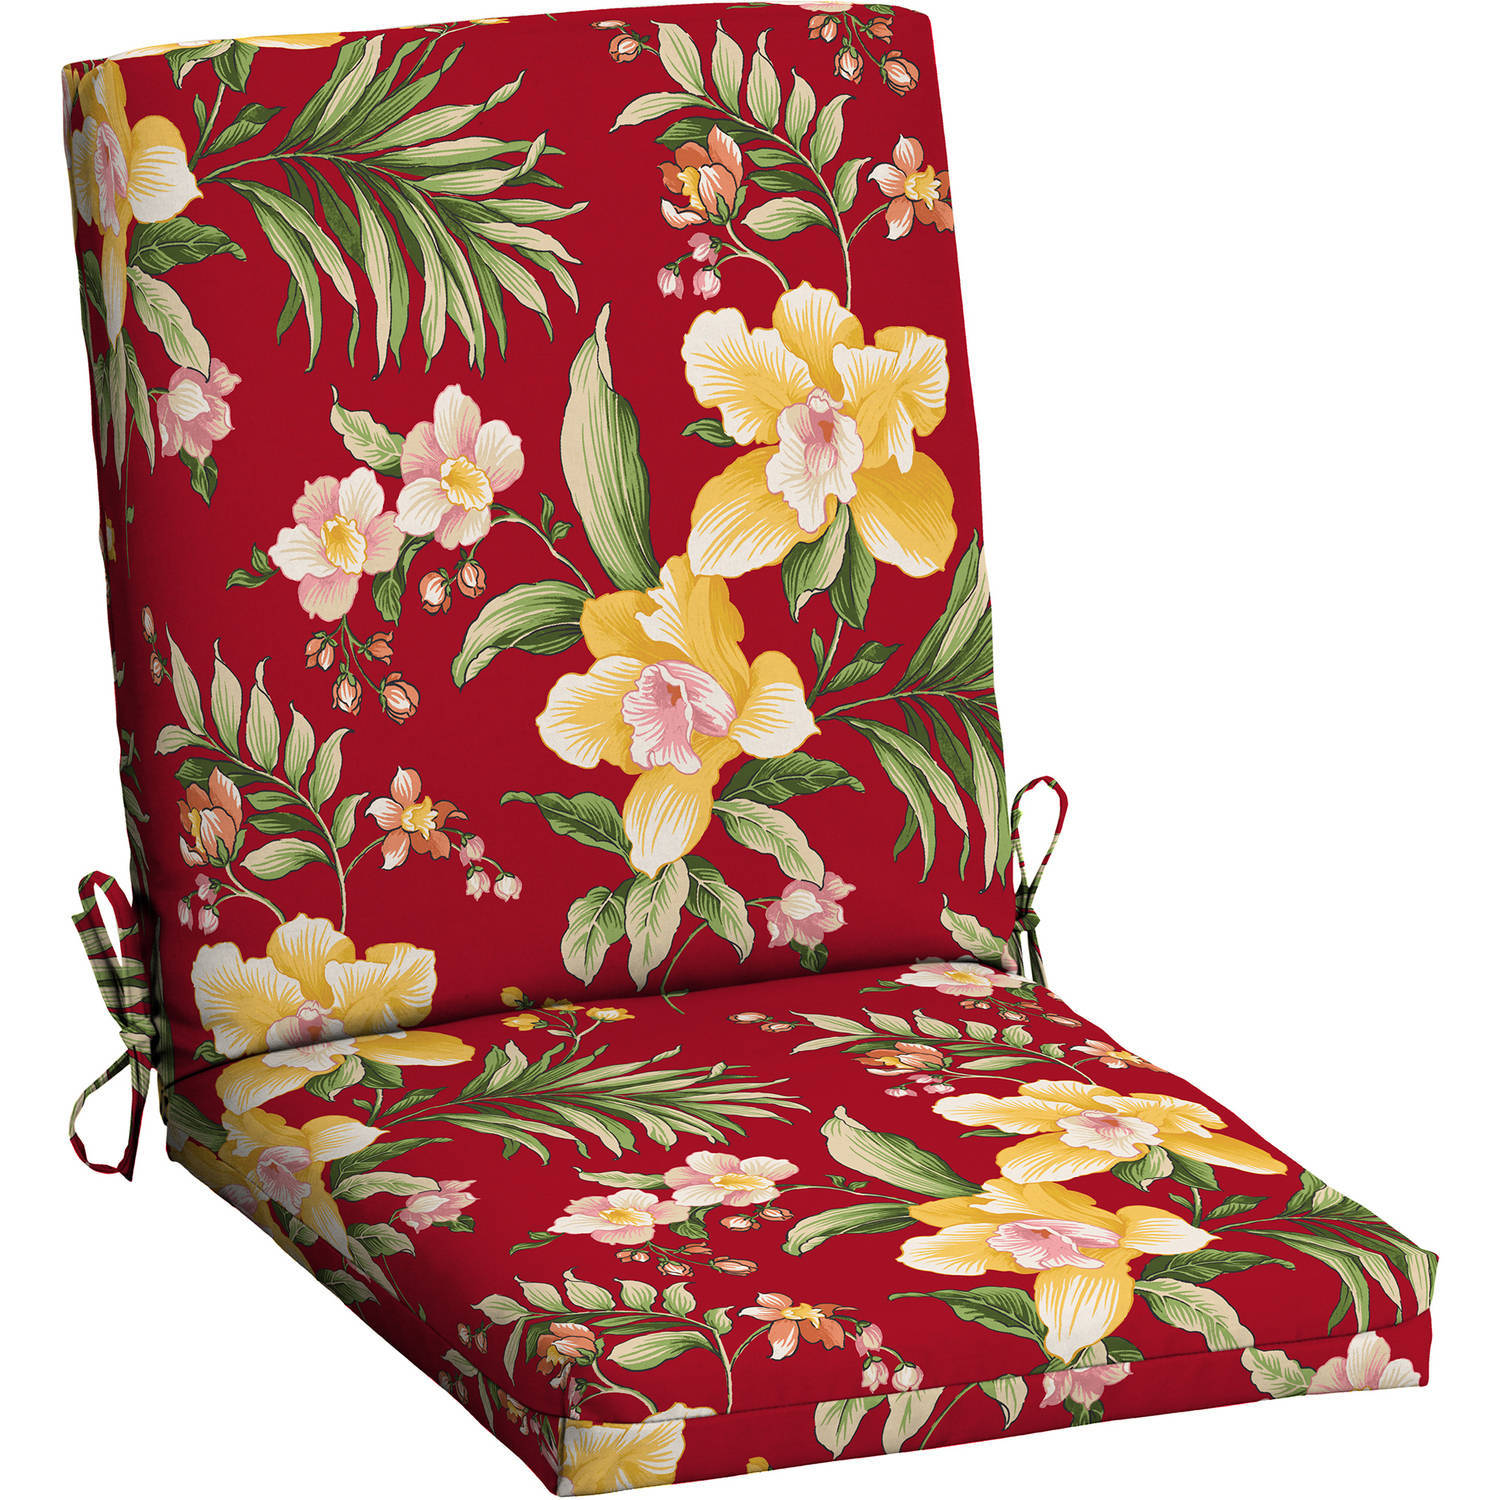 outdoor dining chair cushions. Outdoor Dining Chair Cushions I